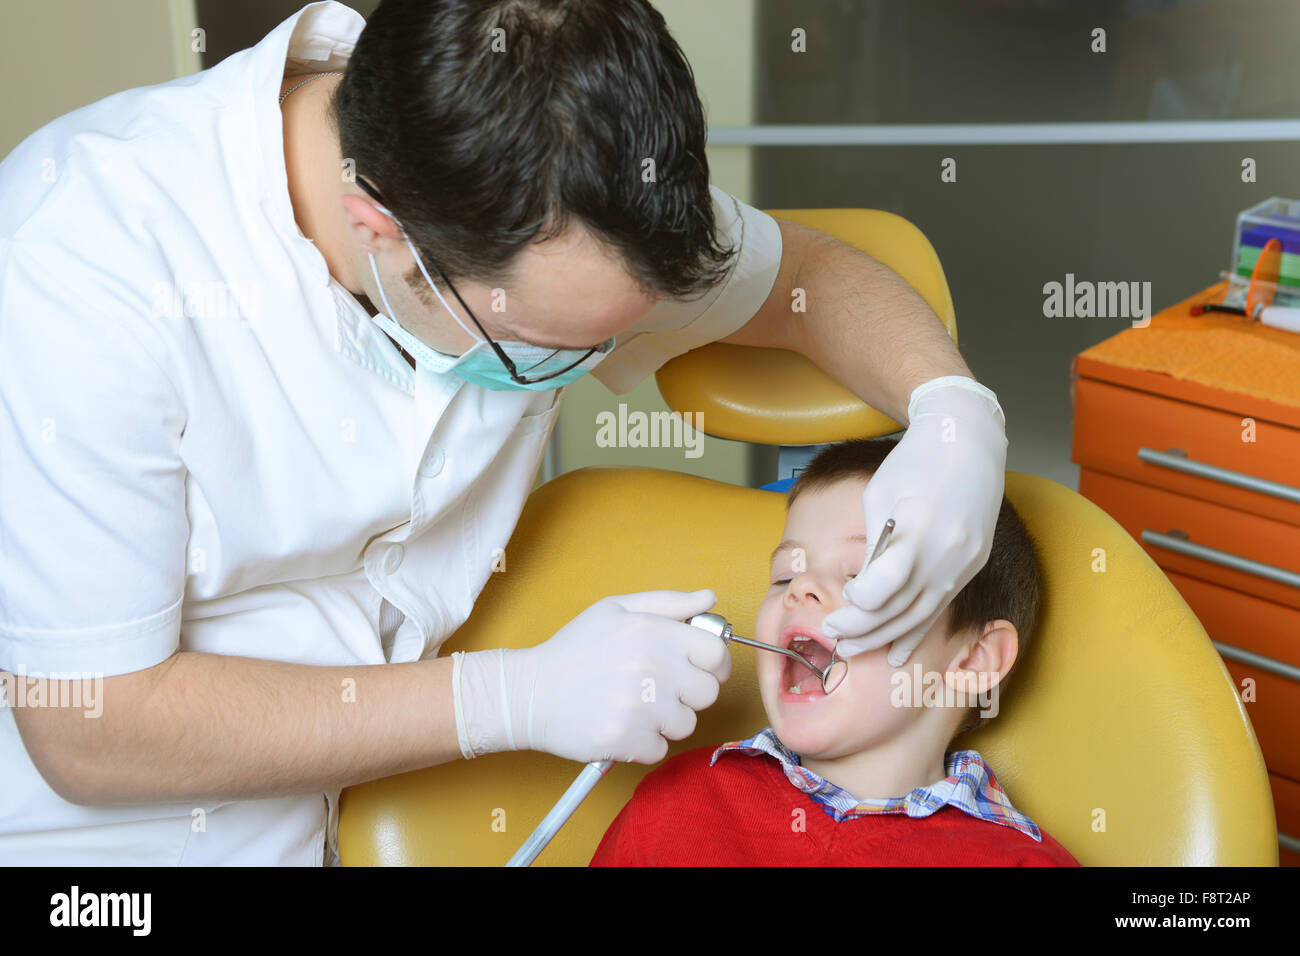 little boy in a red sweater went to the dentist in the dental chair sits next to a doctor to do the dentist to see - Stock Image